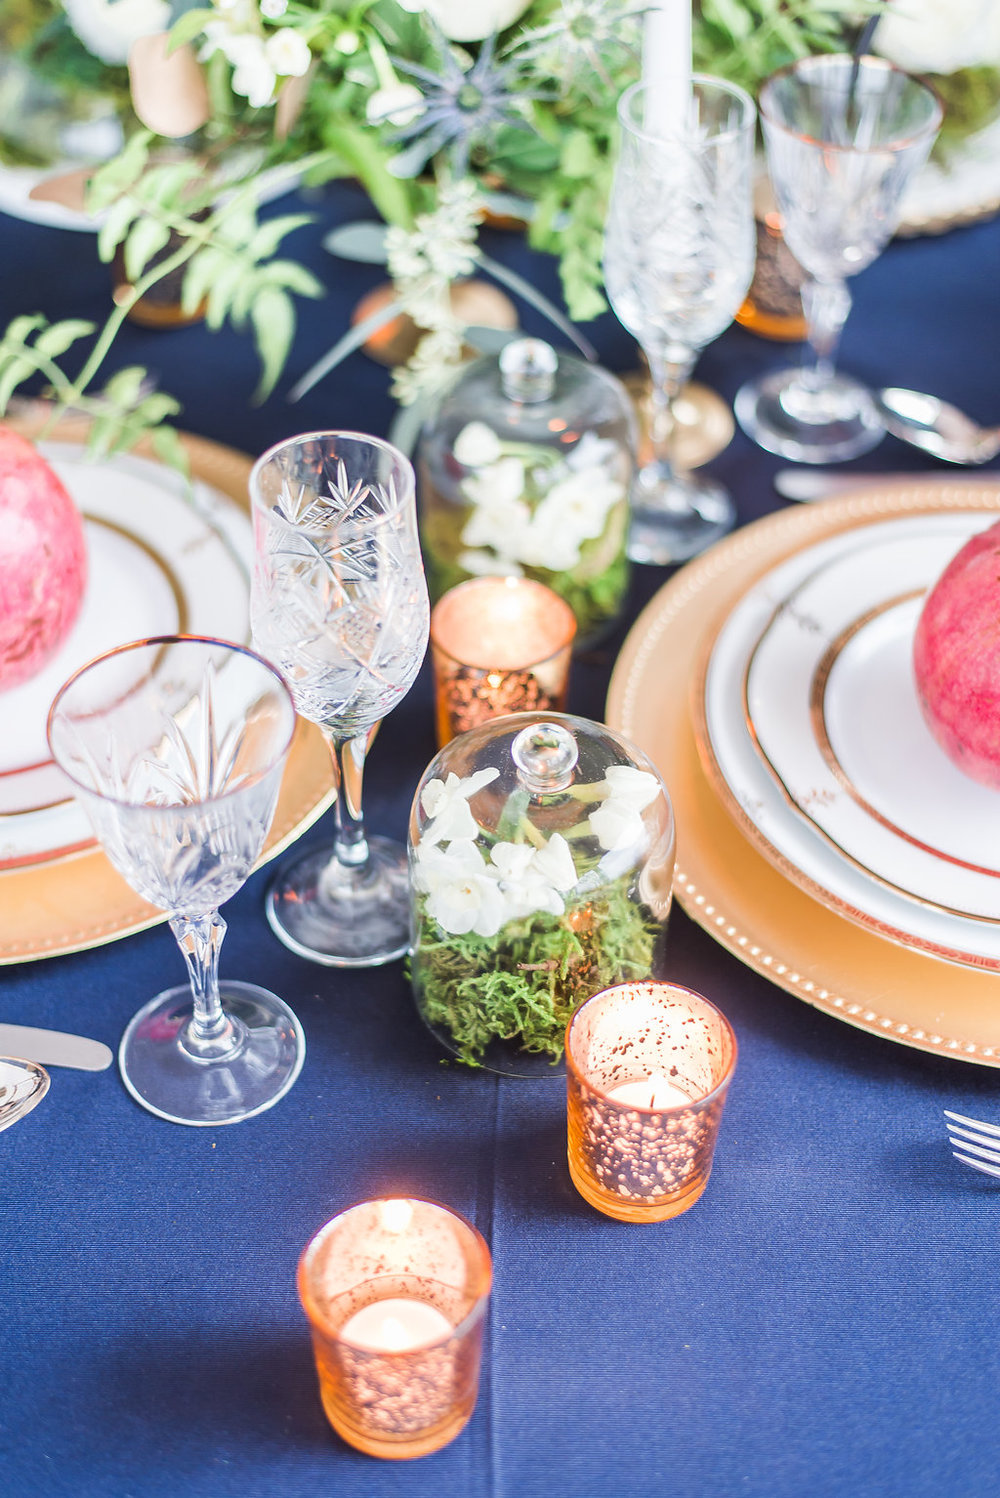 Wedding Inspiration Styled Shoot by Simply Breathe Events in Washington, D.C.